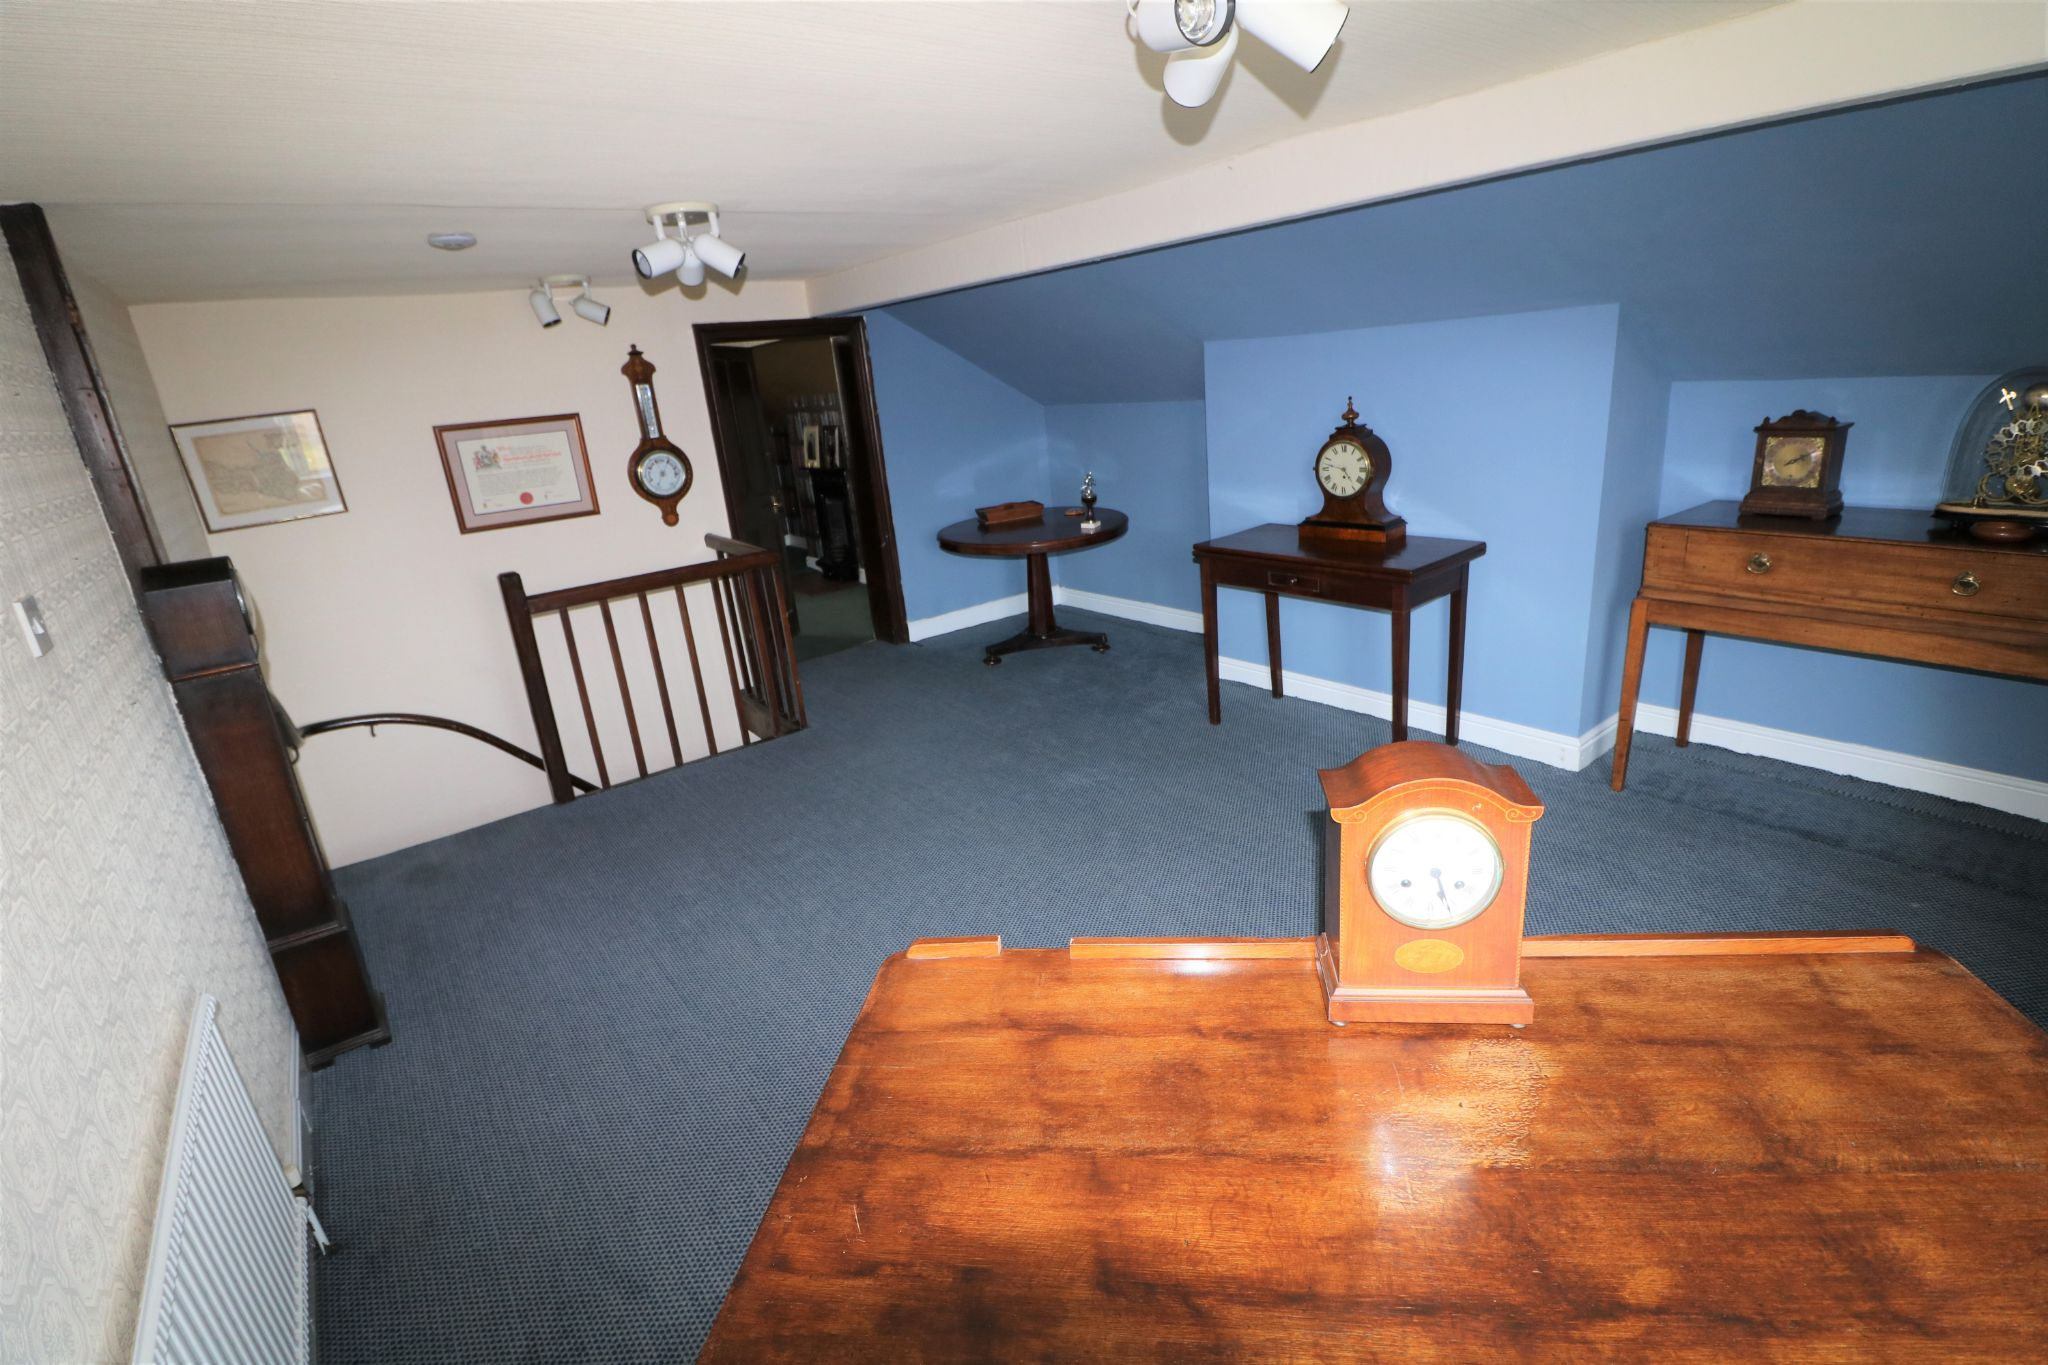 6 Bedroom Semi-detached House For Sale - Photograph 26